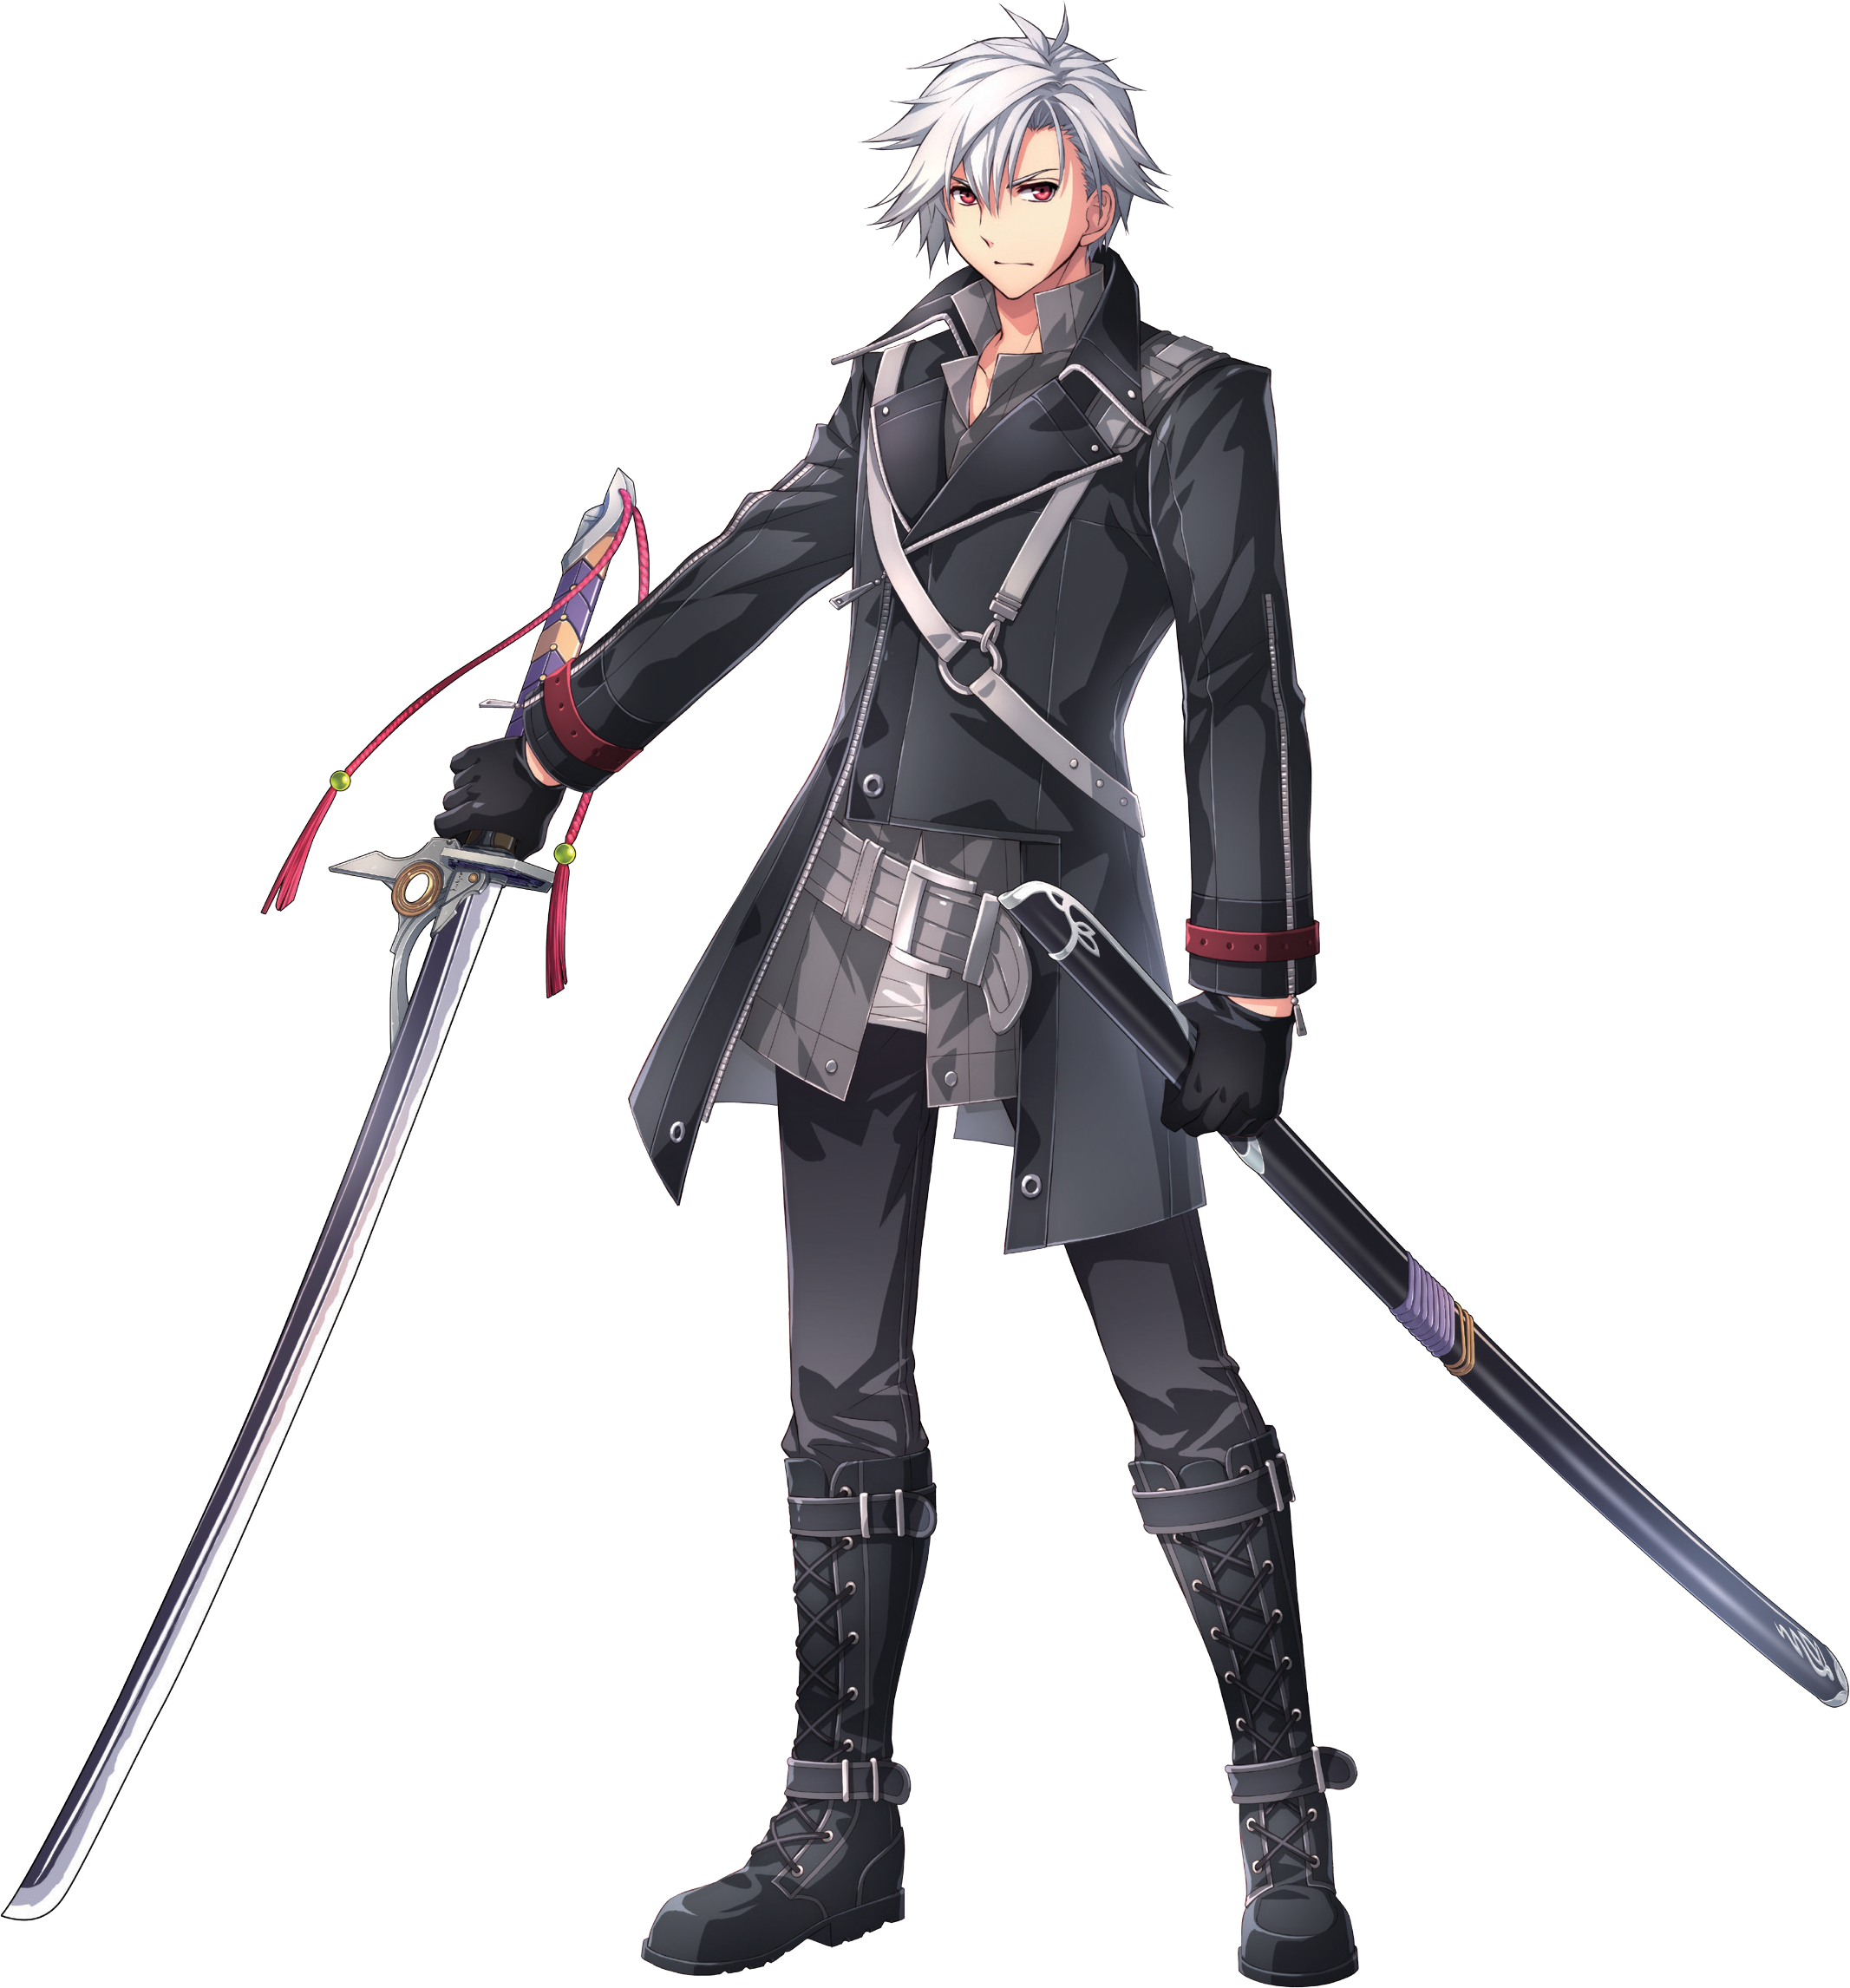 List of Trails of Cold Steel IV Characters